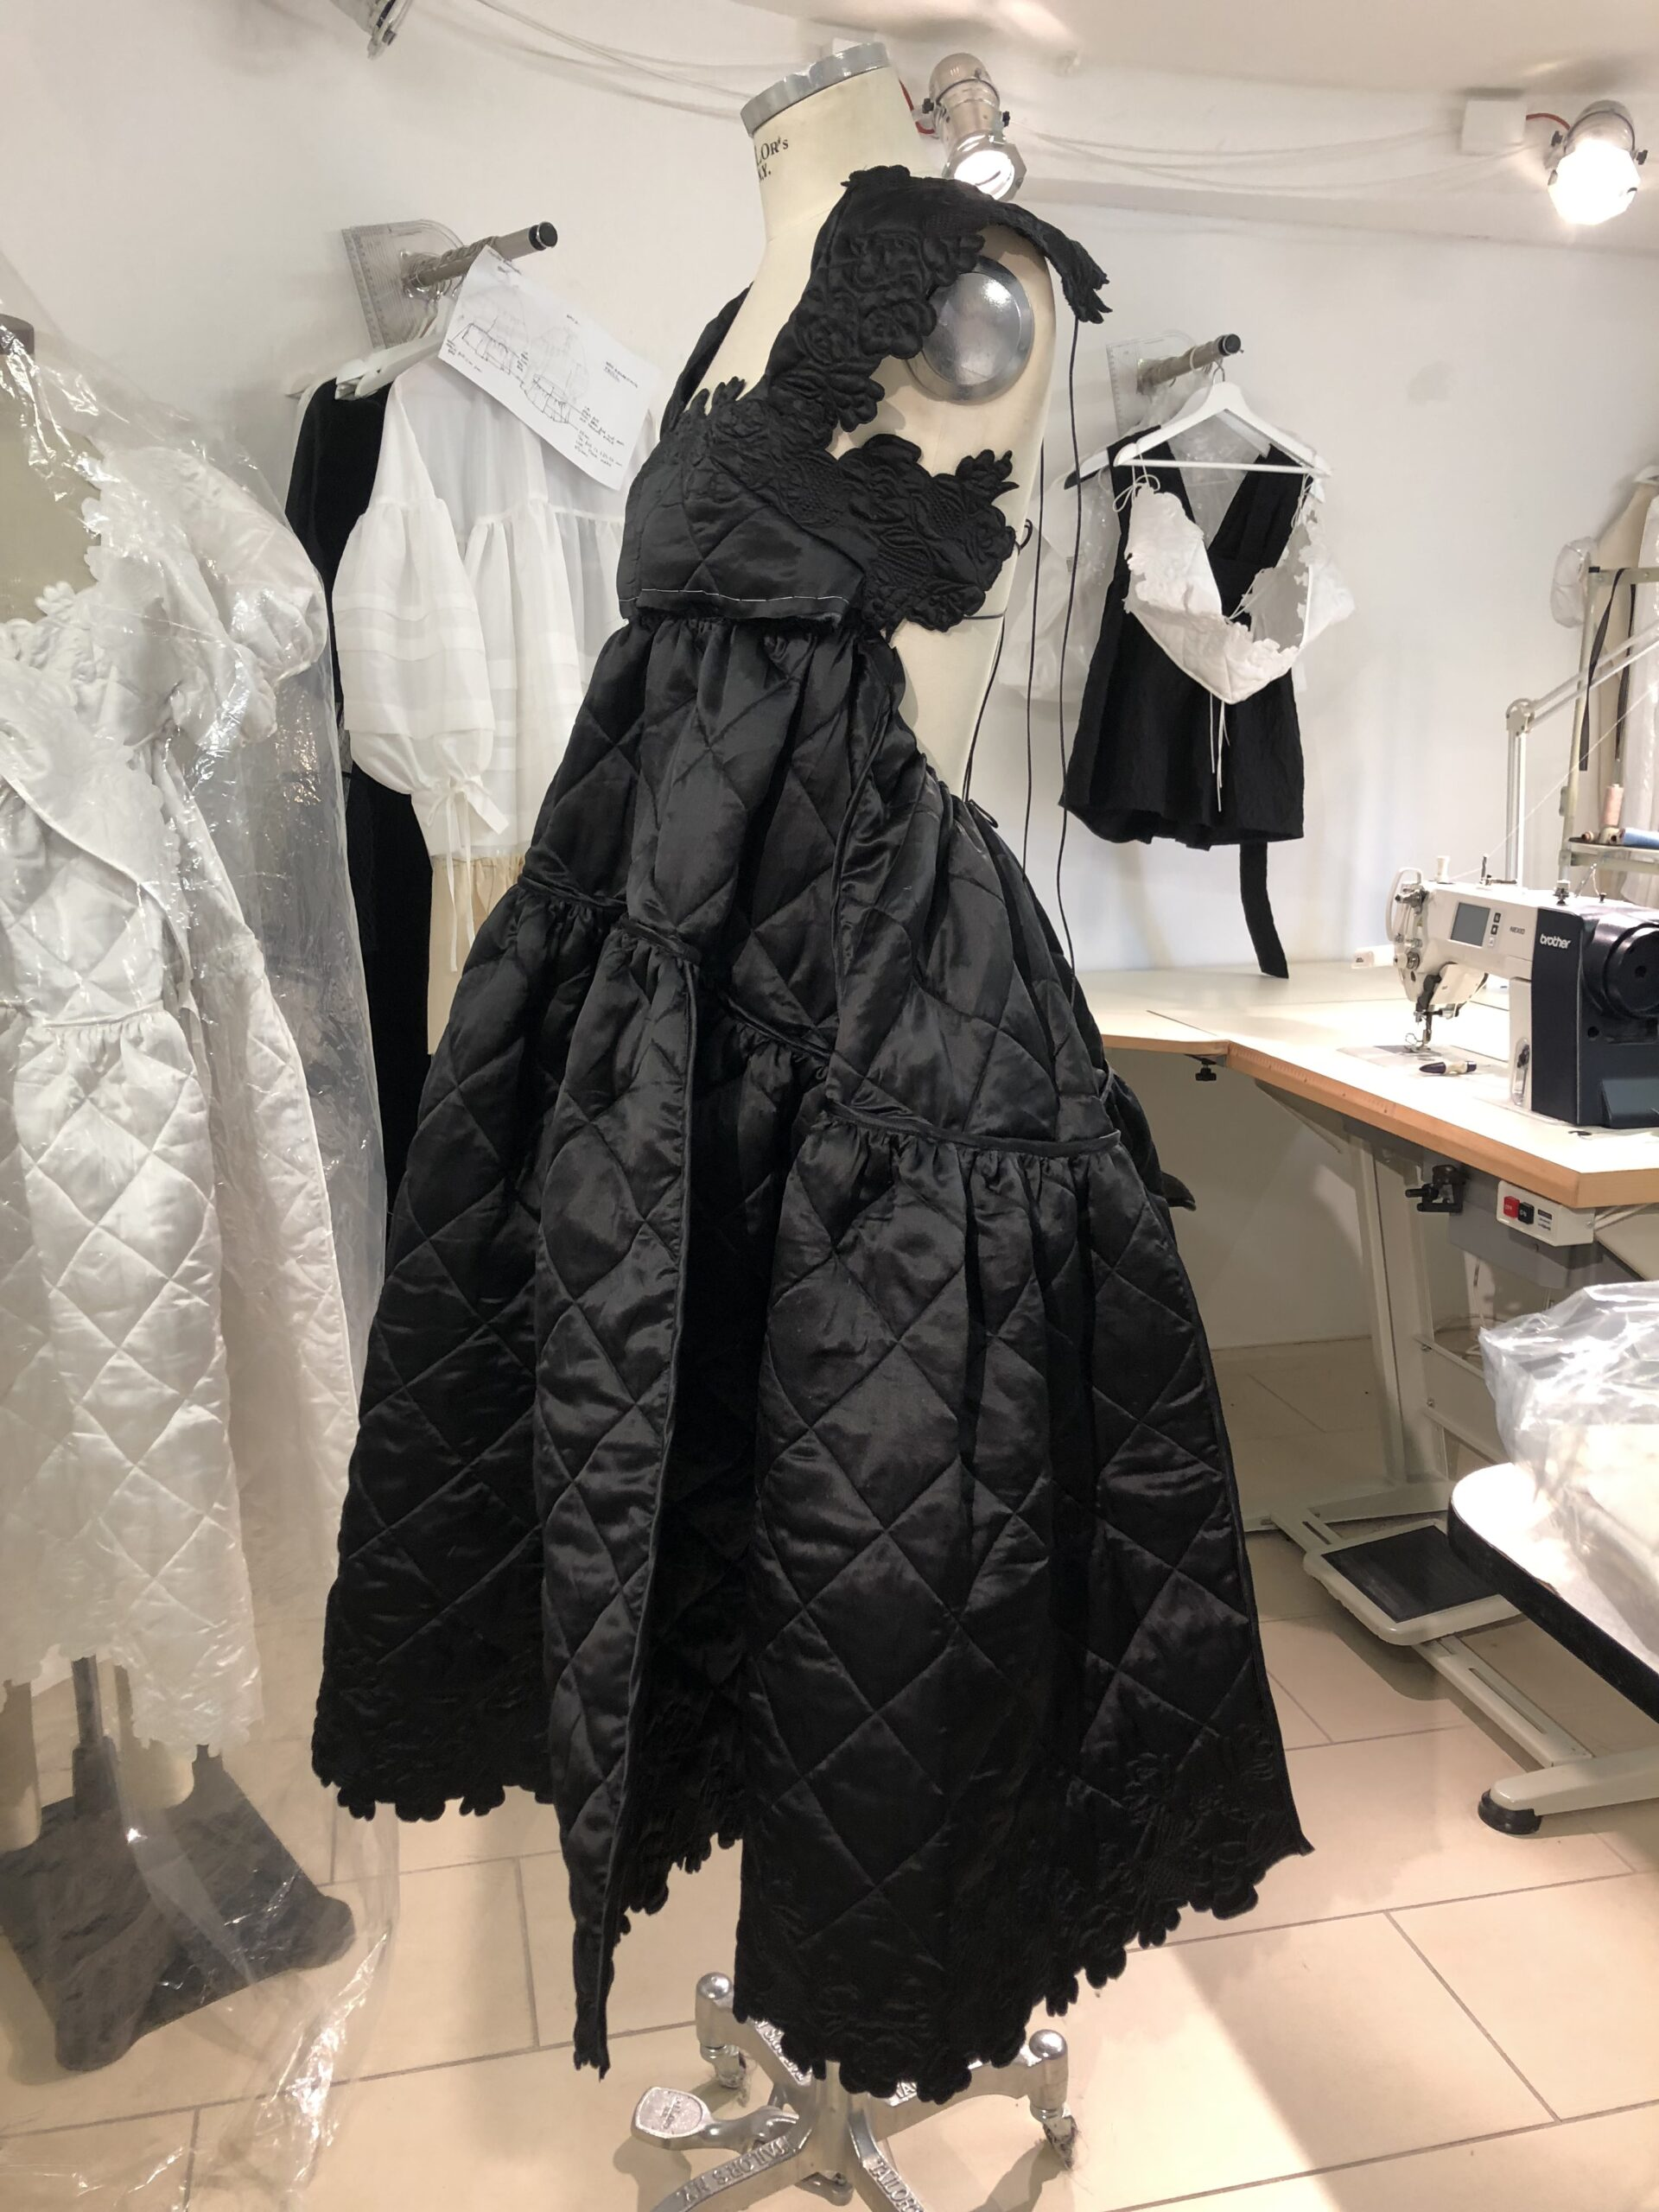 A look through Cecilie Bahnsen's studio before finalising a collection, as seen in 1 Granary issue 6